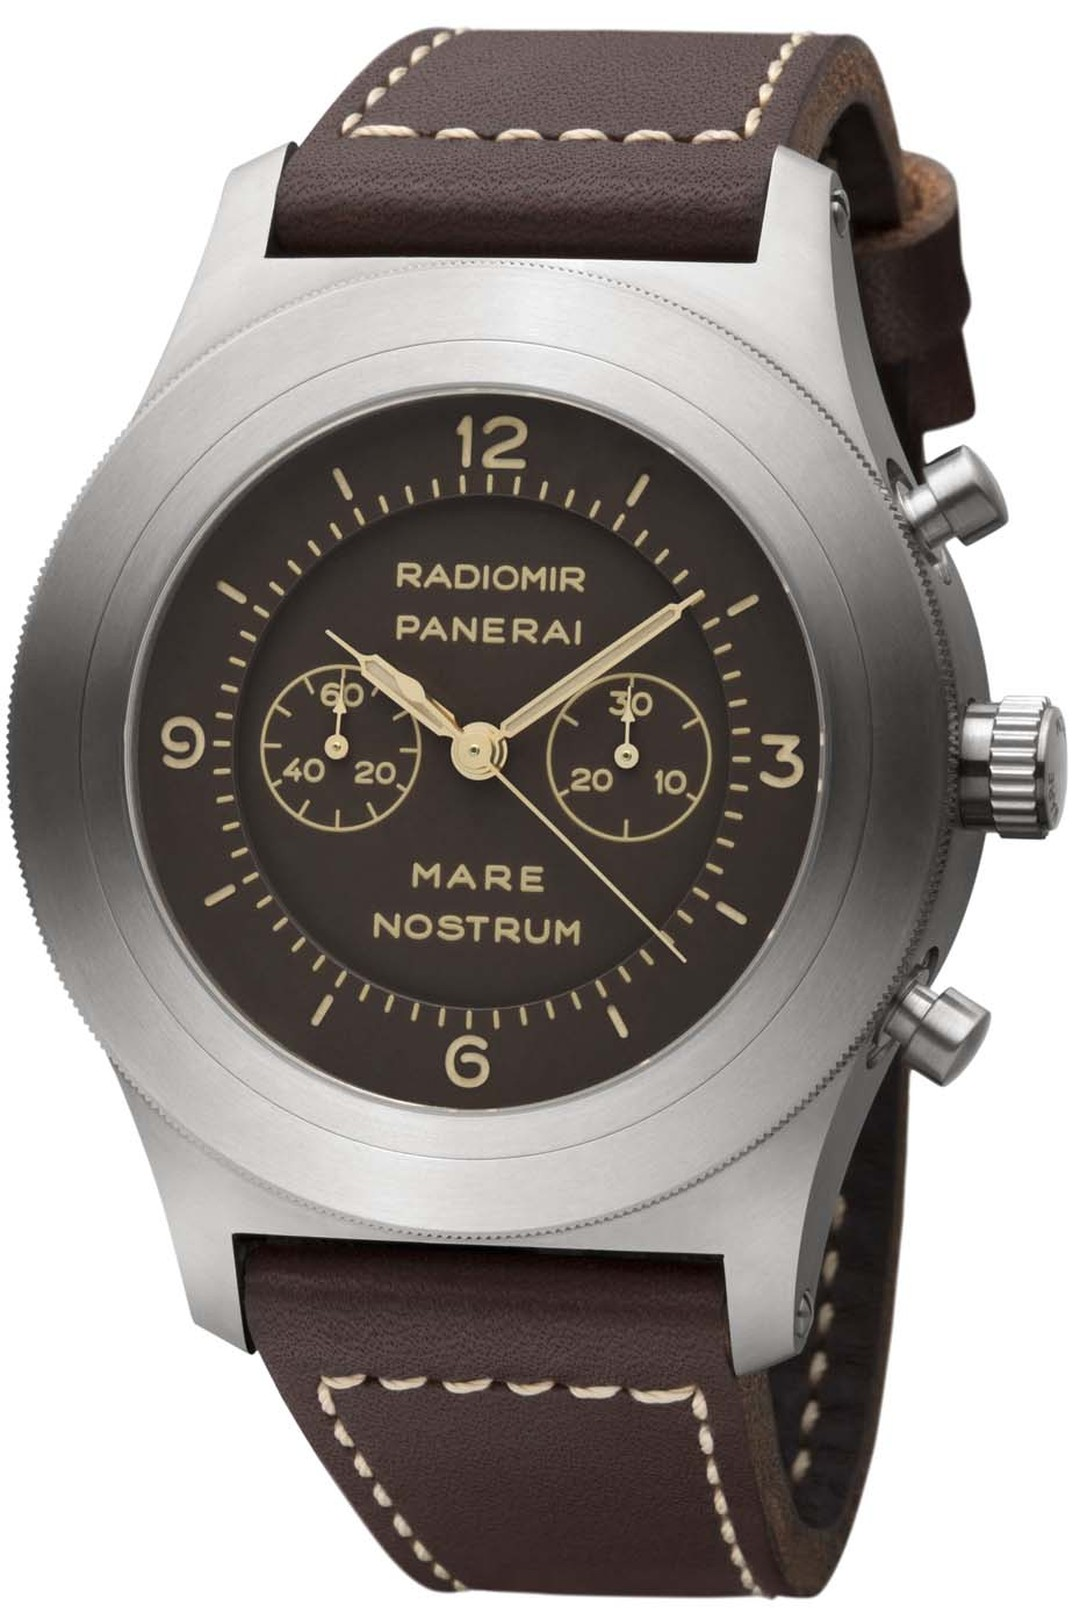 Panerai Mare Nostrum bi-compax chronograph is activated with the piston-shaped pushers on the side of the brushed titanium case, which is water-resistant to depths of up to 300 metres.